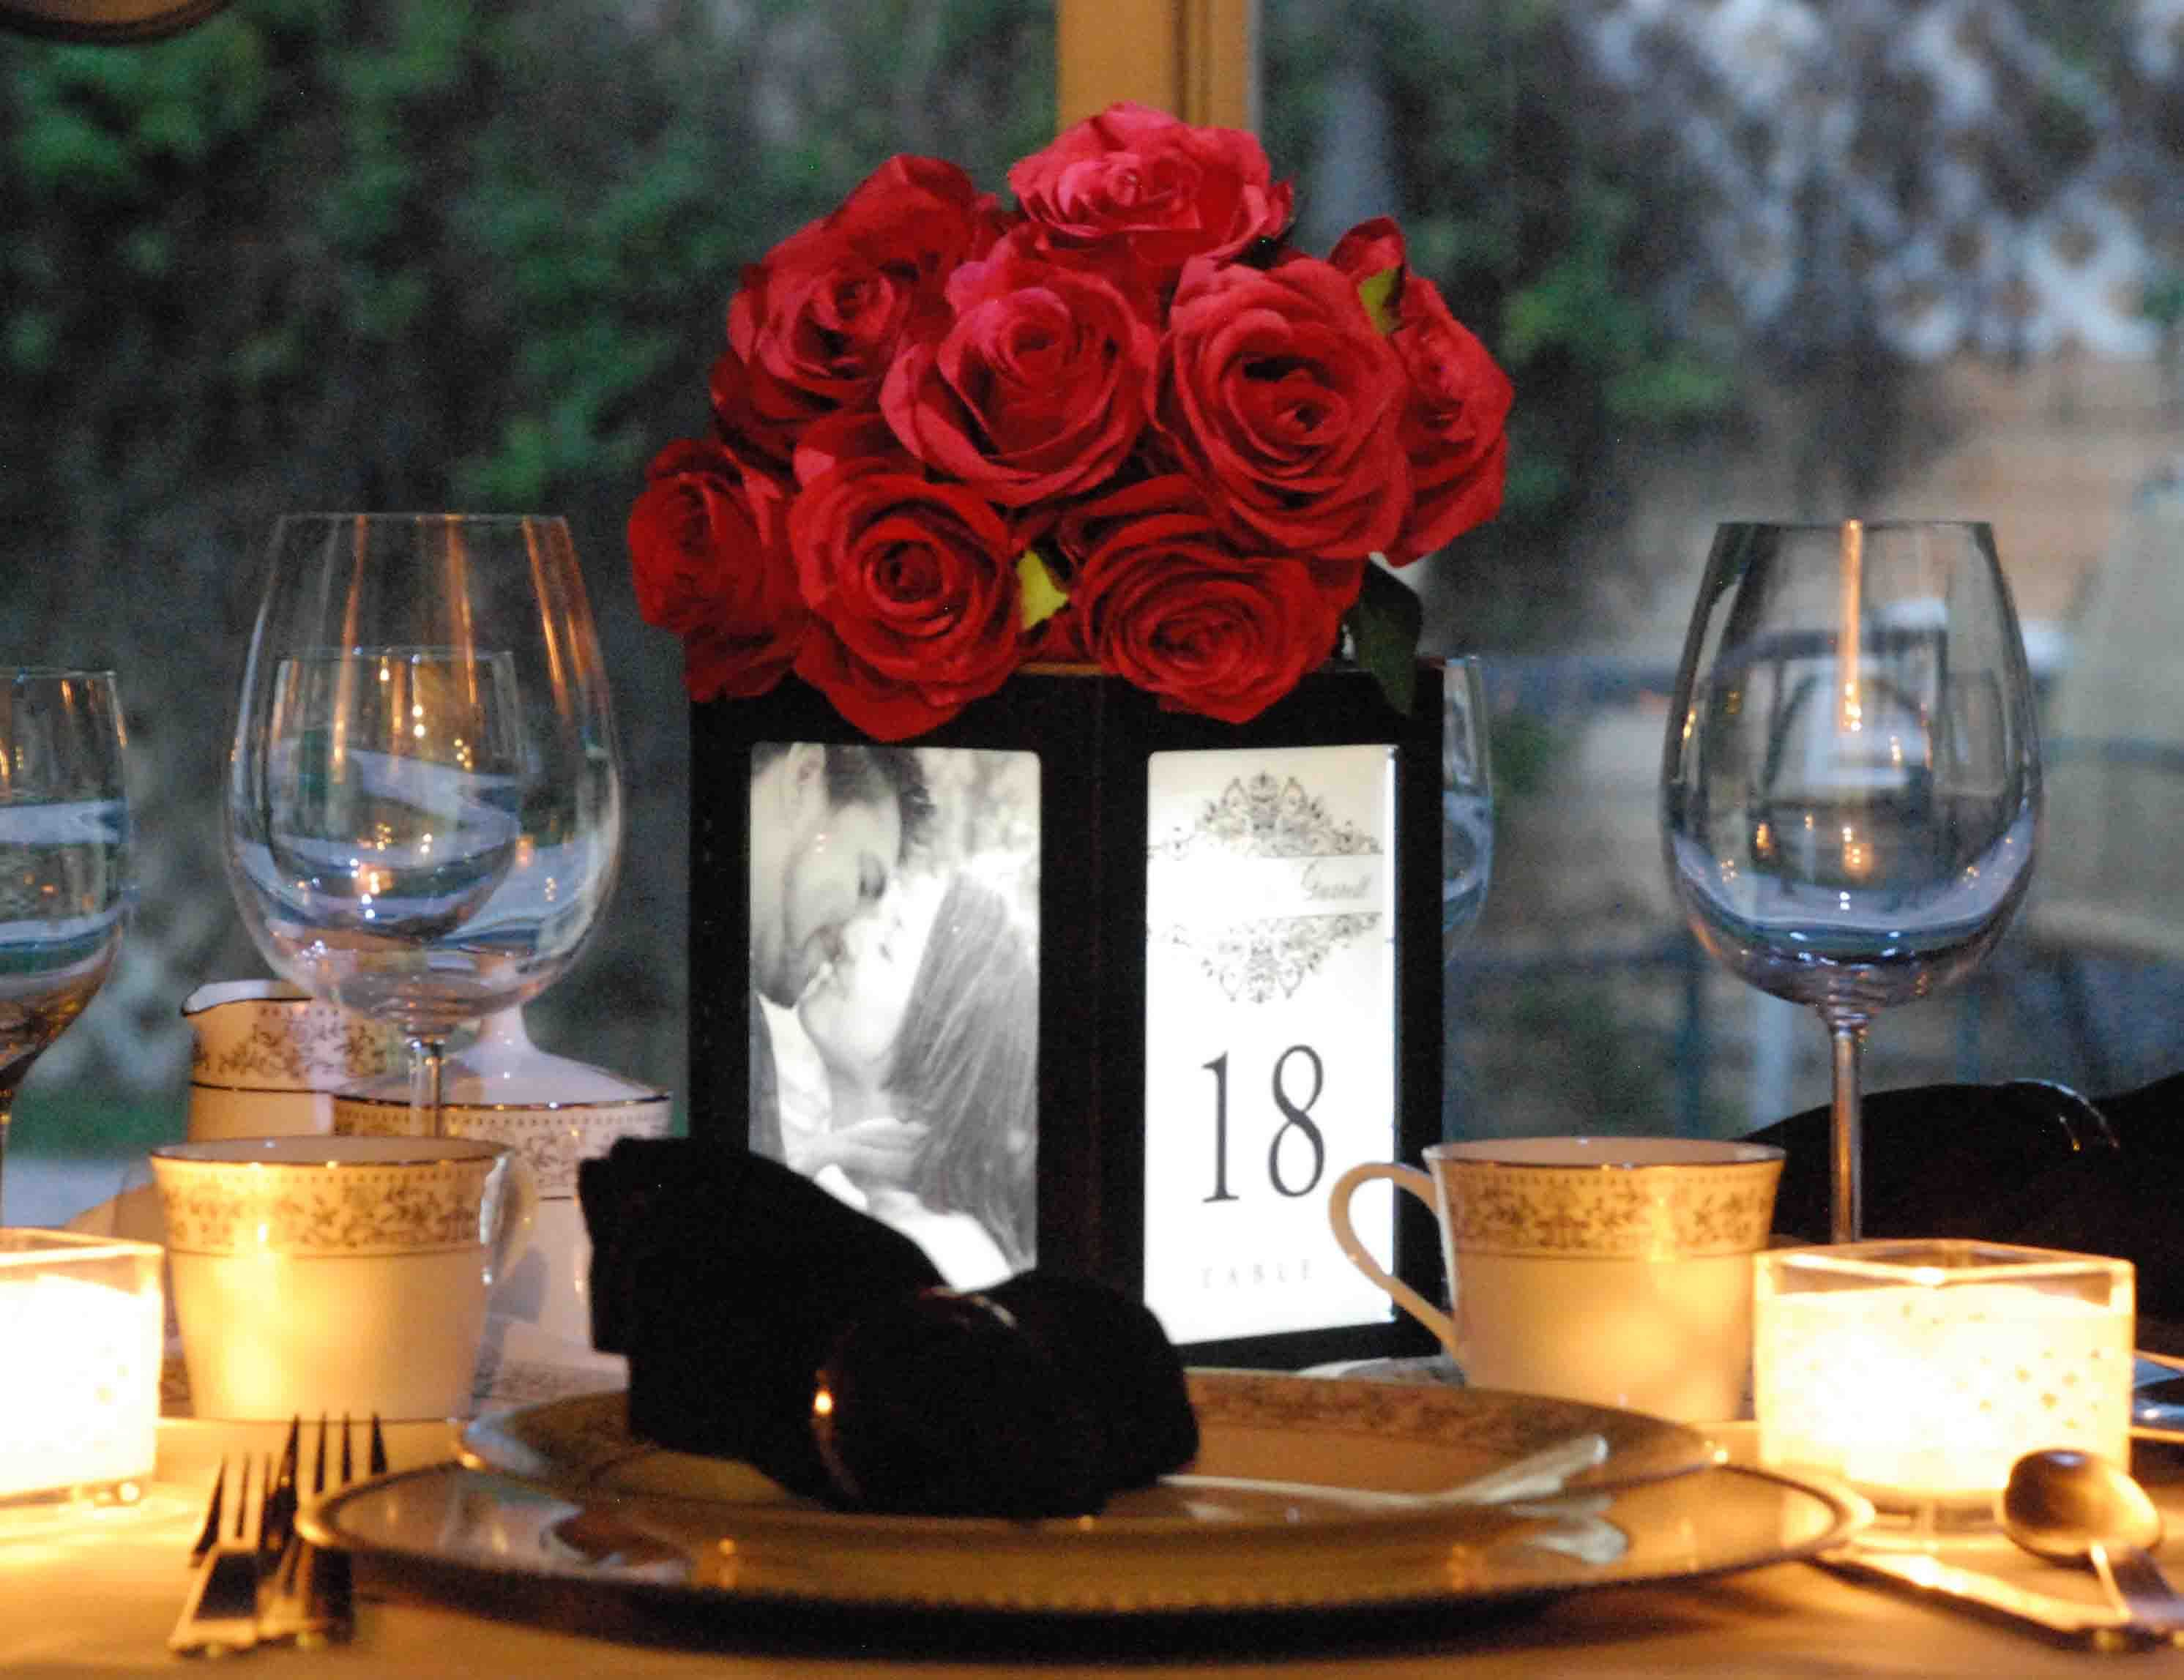 Table Centerpieces, Wedding Centerpiece, Banquet Centerpiece, Events  Centerpiece and Restaurant Table Tent Illuminated